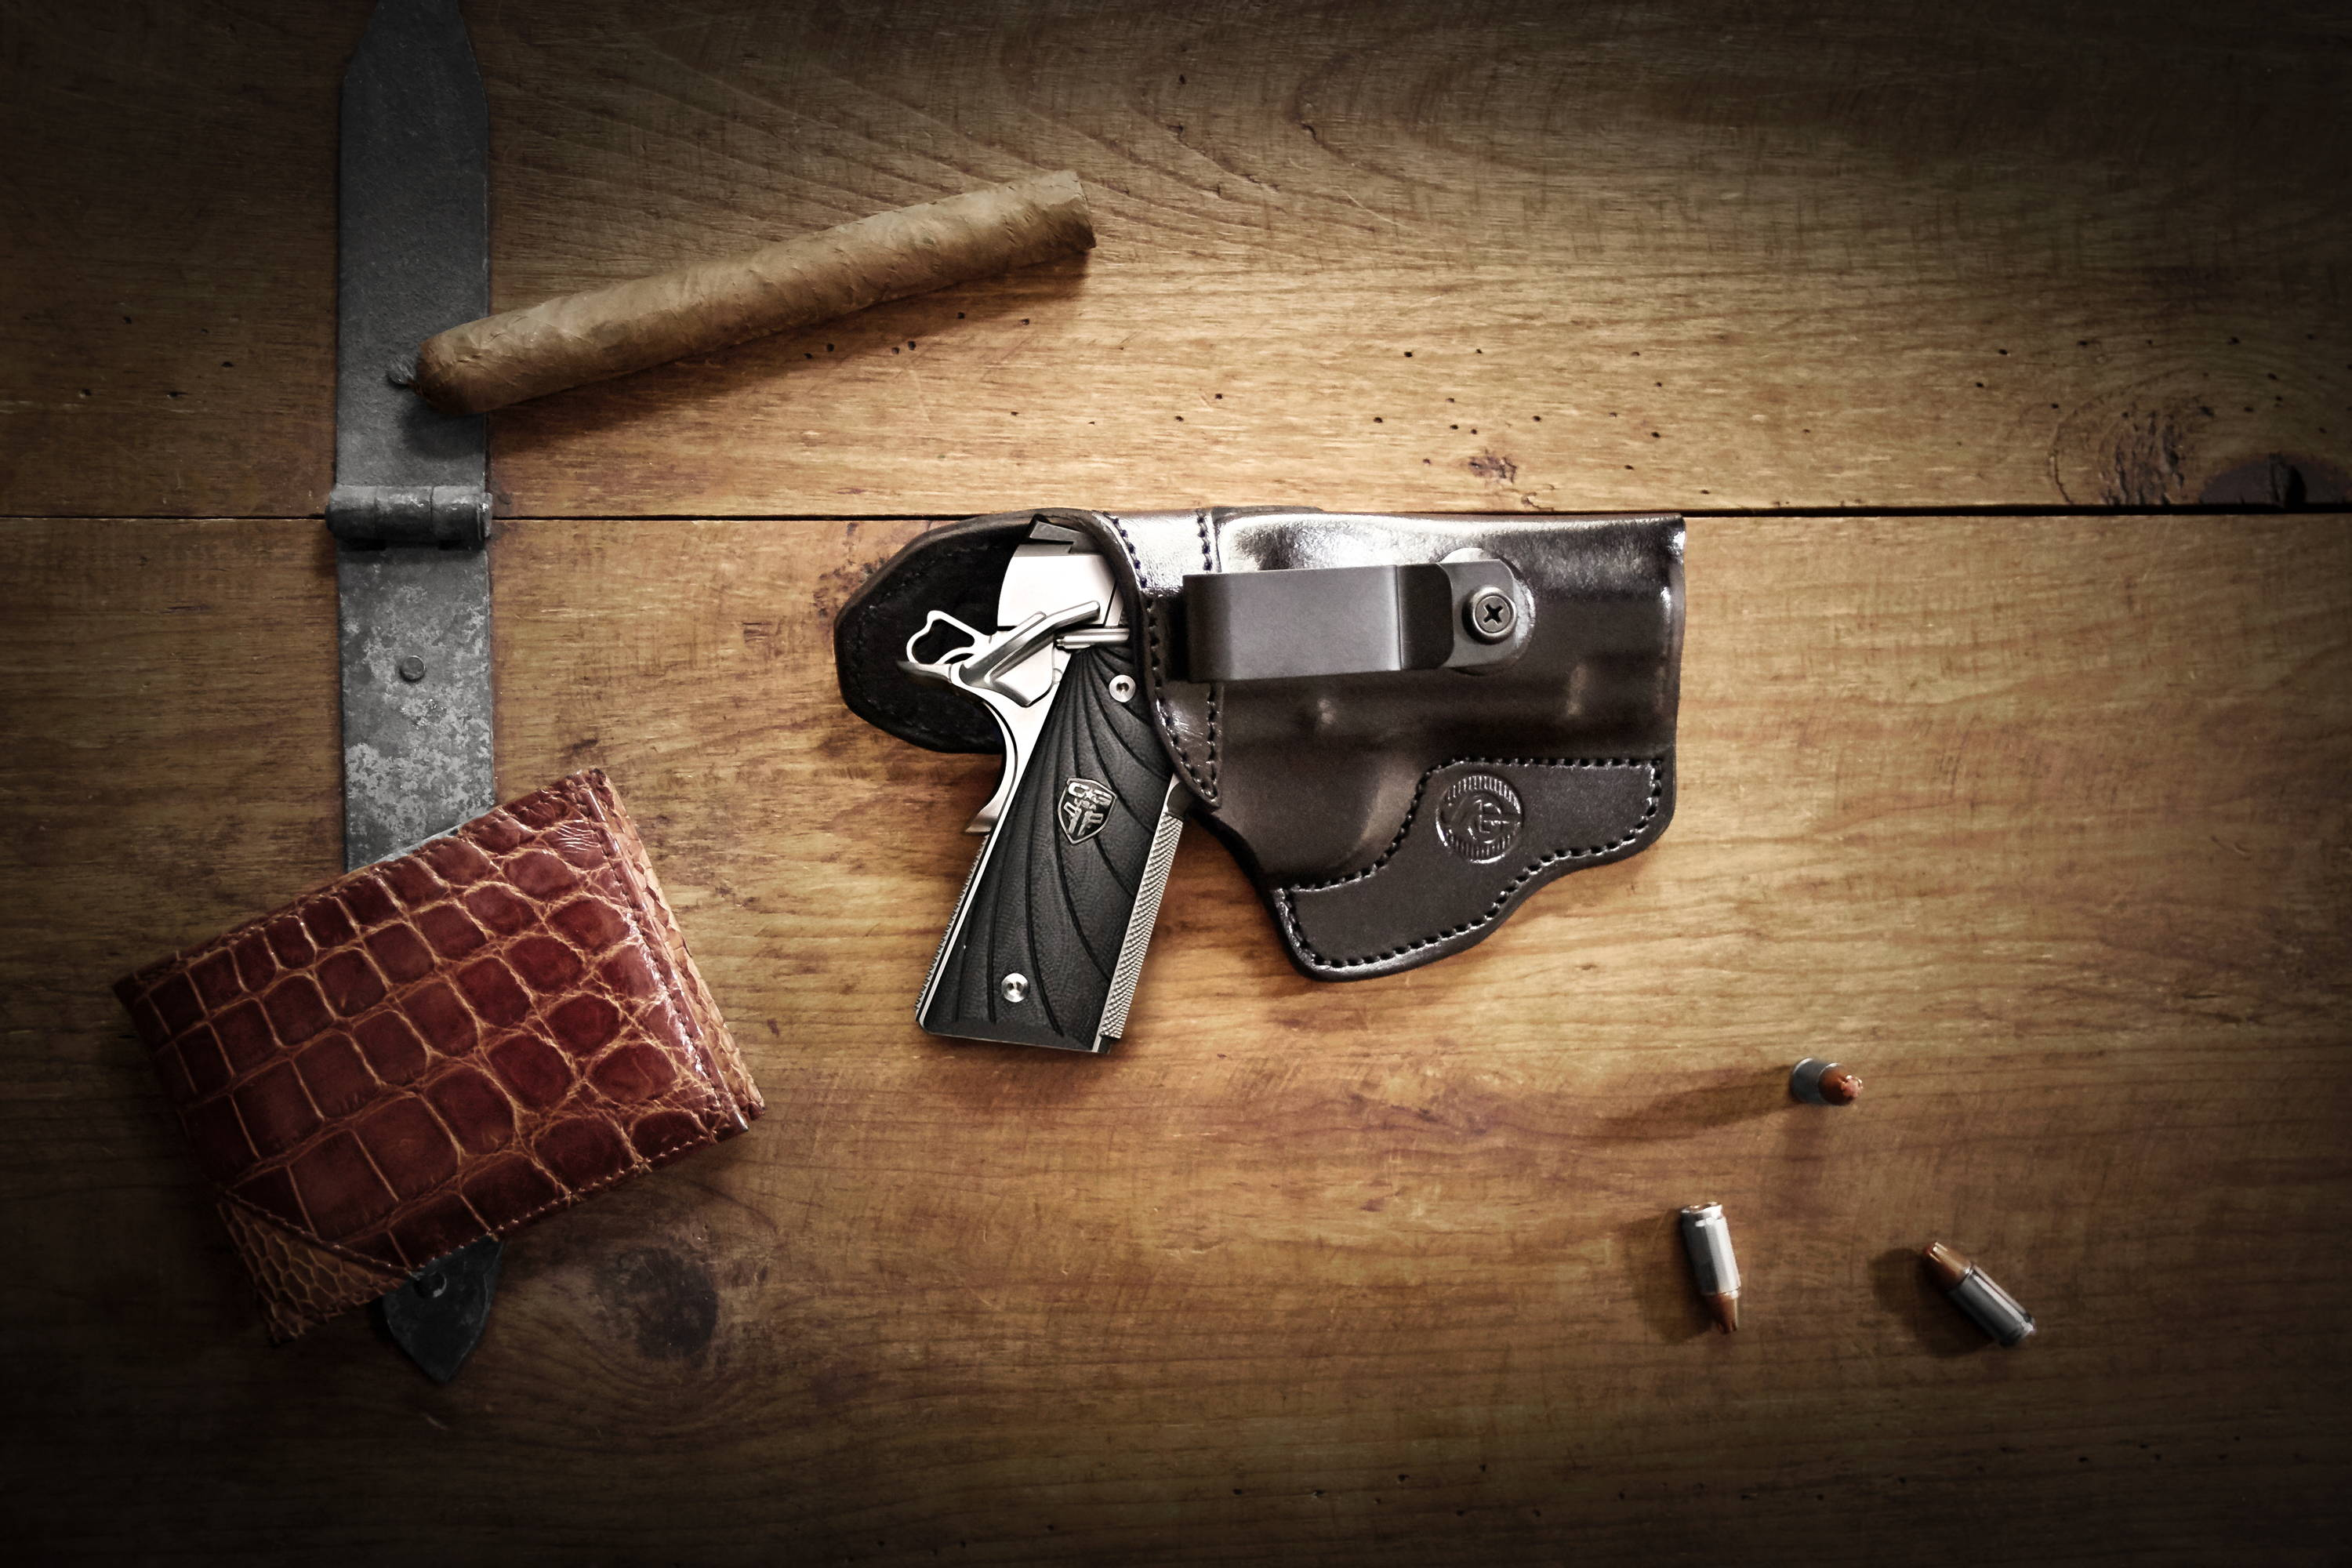 Appendix carry leather holster